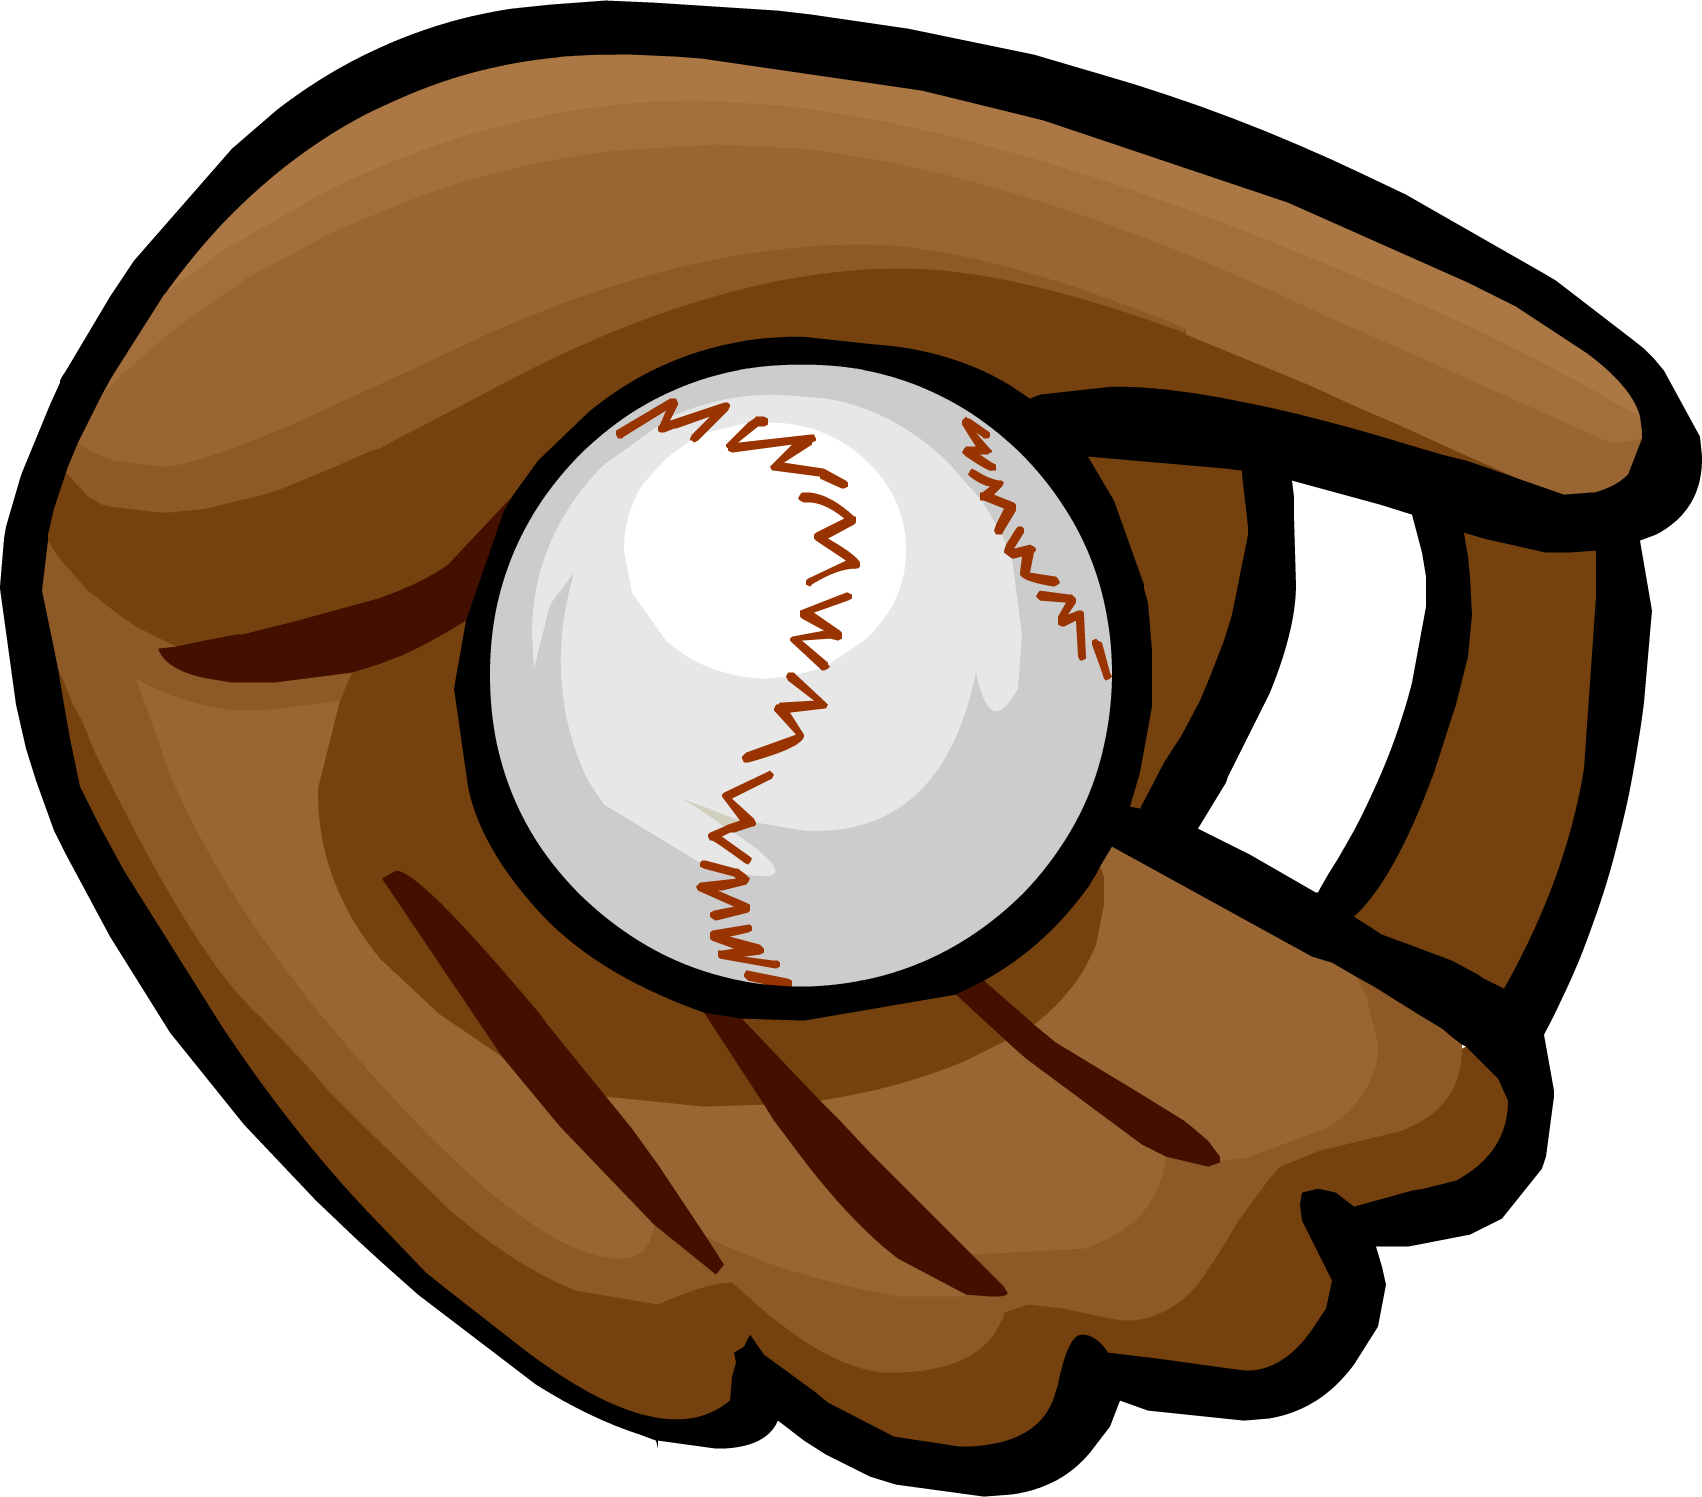 Cartoon baseball png. Image glove clothing icon